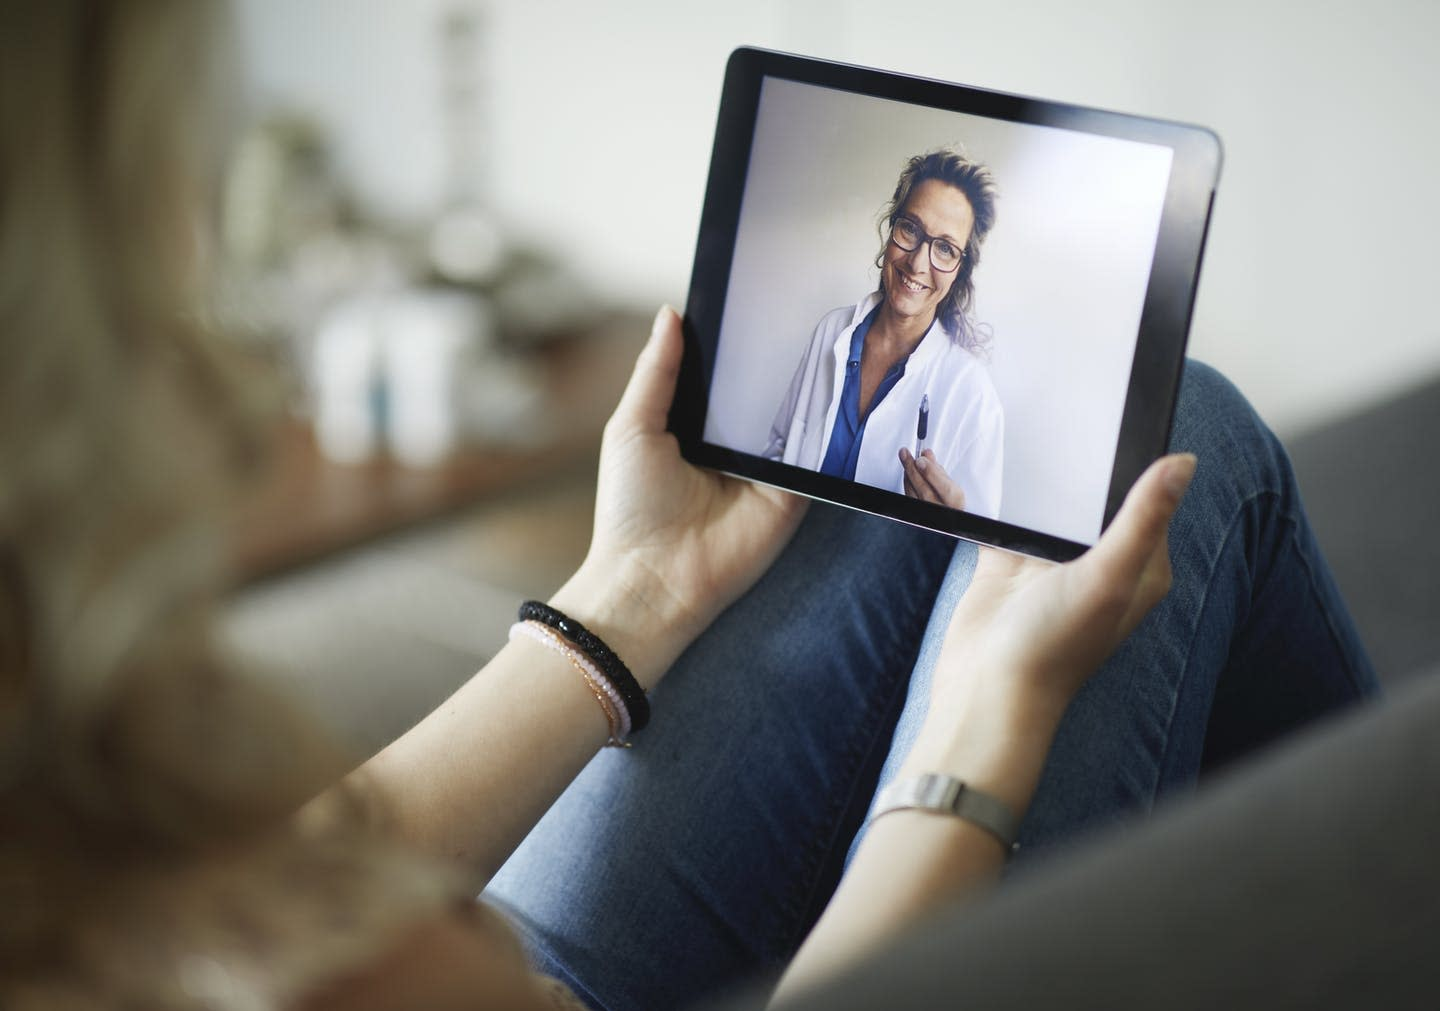 Health insurers are starting to roll back coverage for telehealth – even though demand is way up due to COVID-19